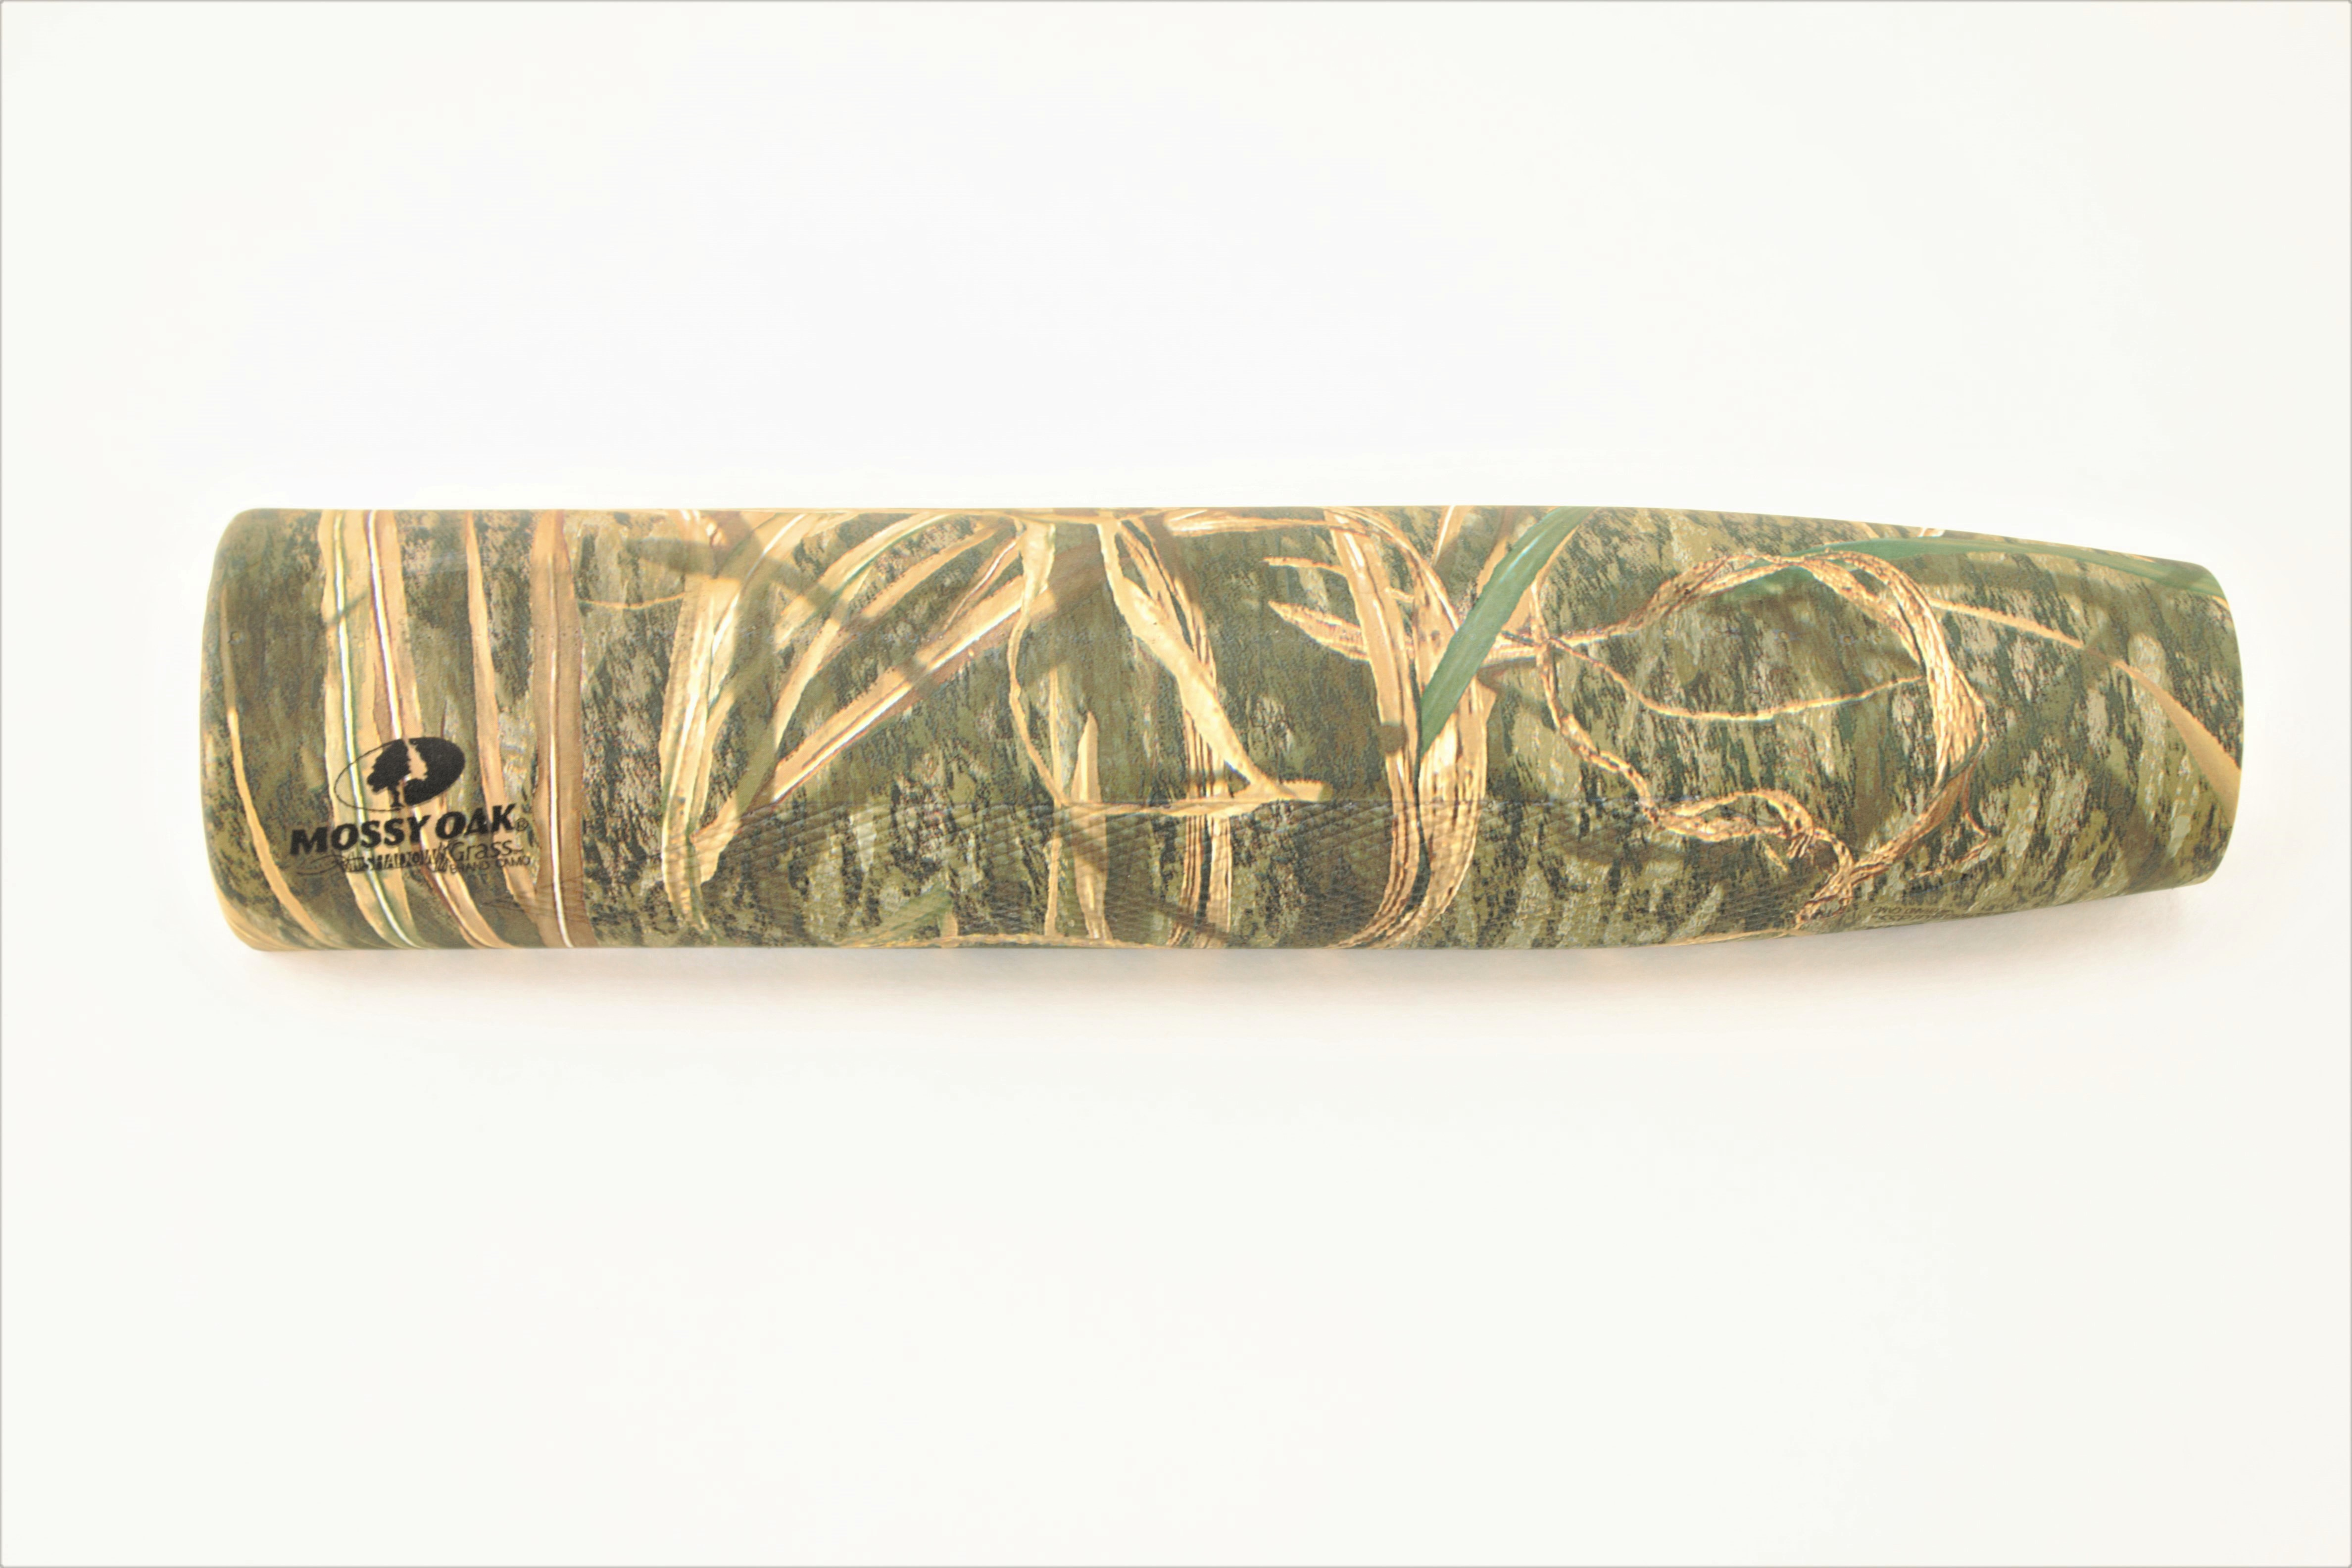 Winchester Grass Camo Forend